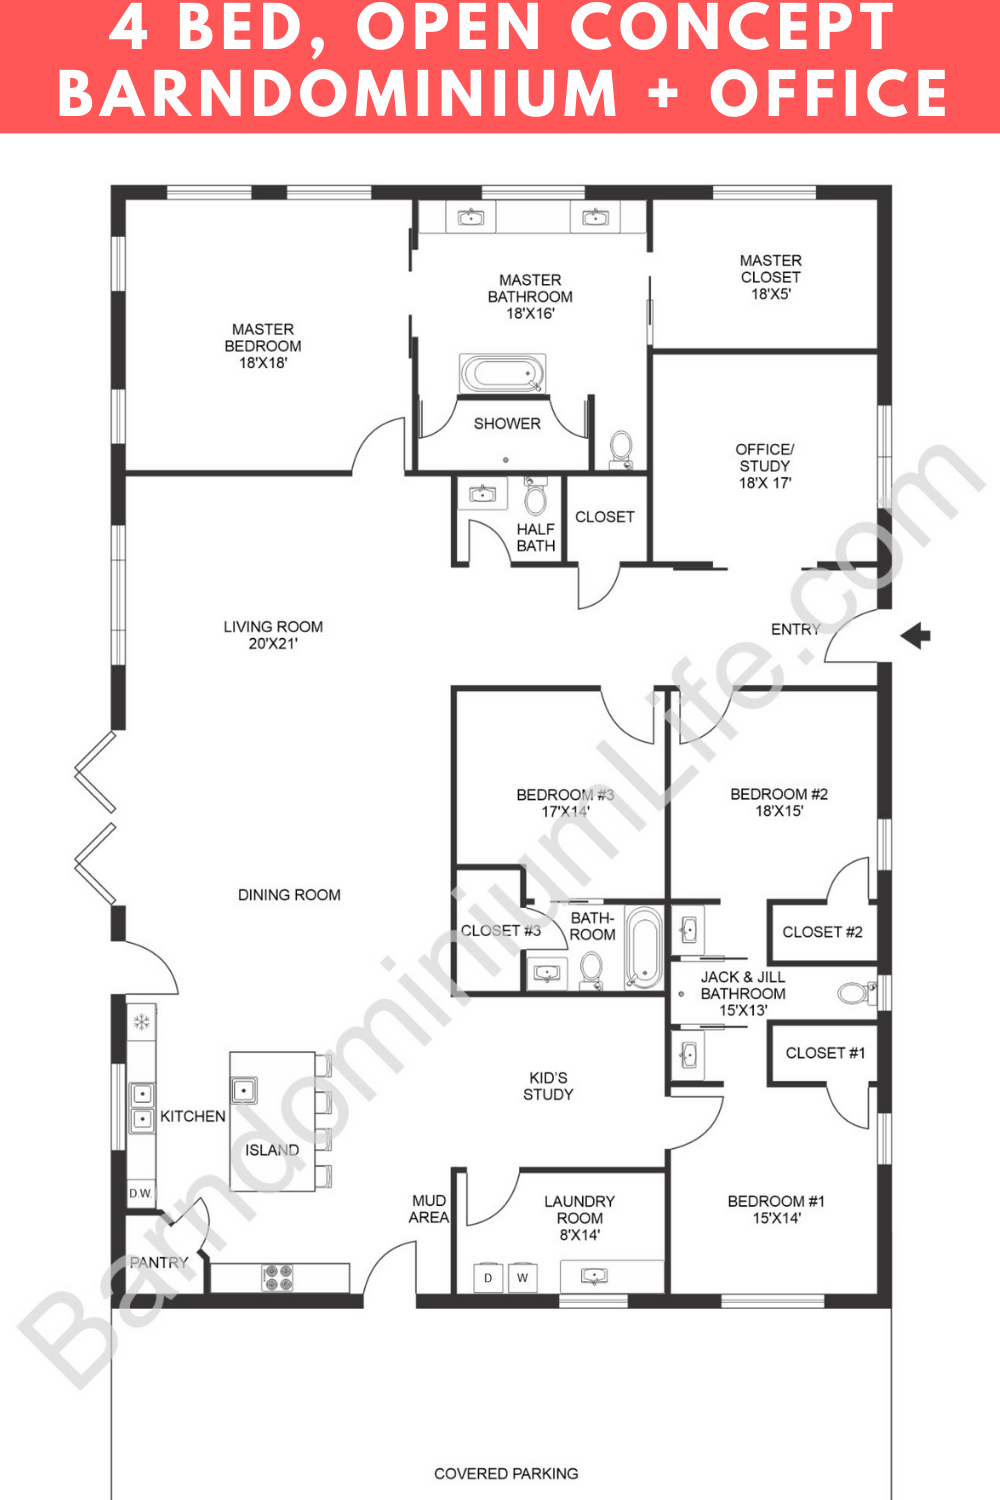 Open Concept Barndominium With Office And Kid Space Barndominium Floor Plans Barndominium New House Plans